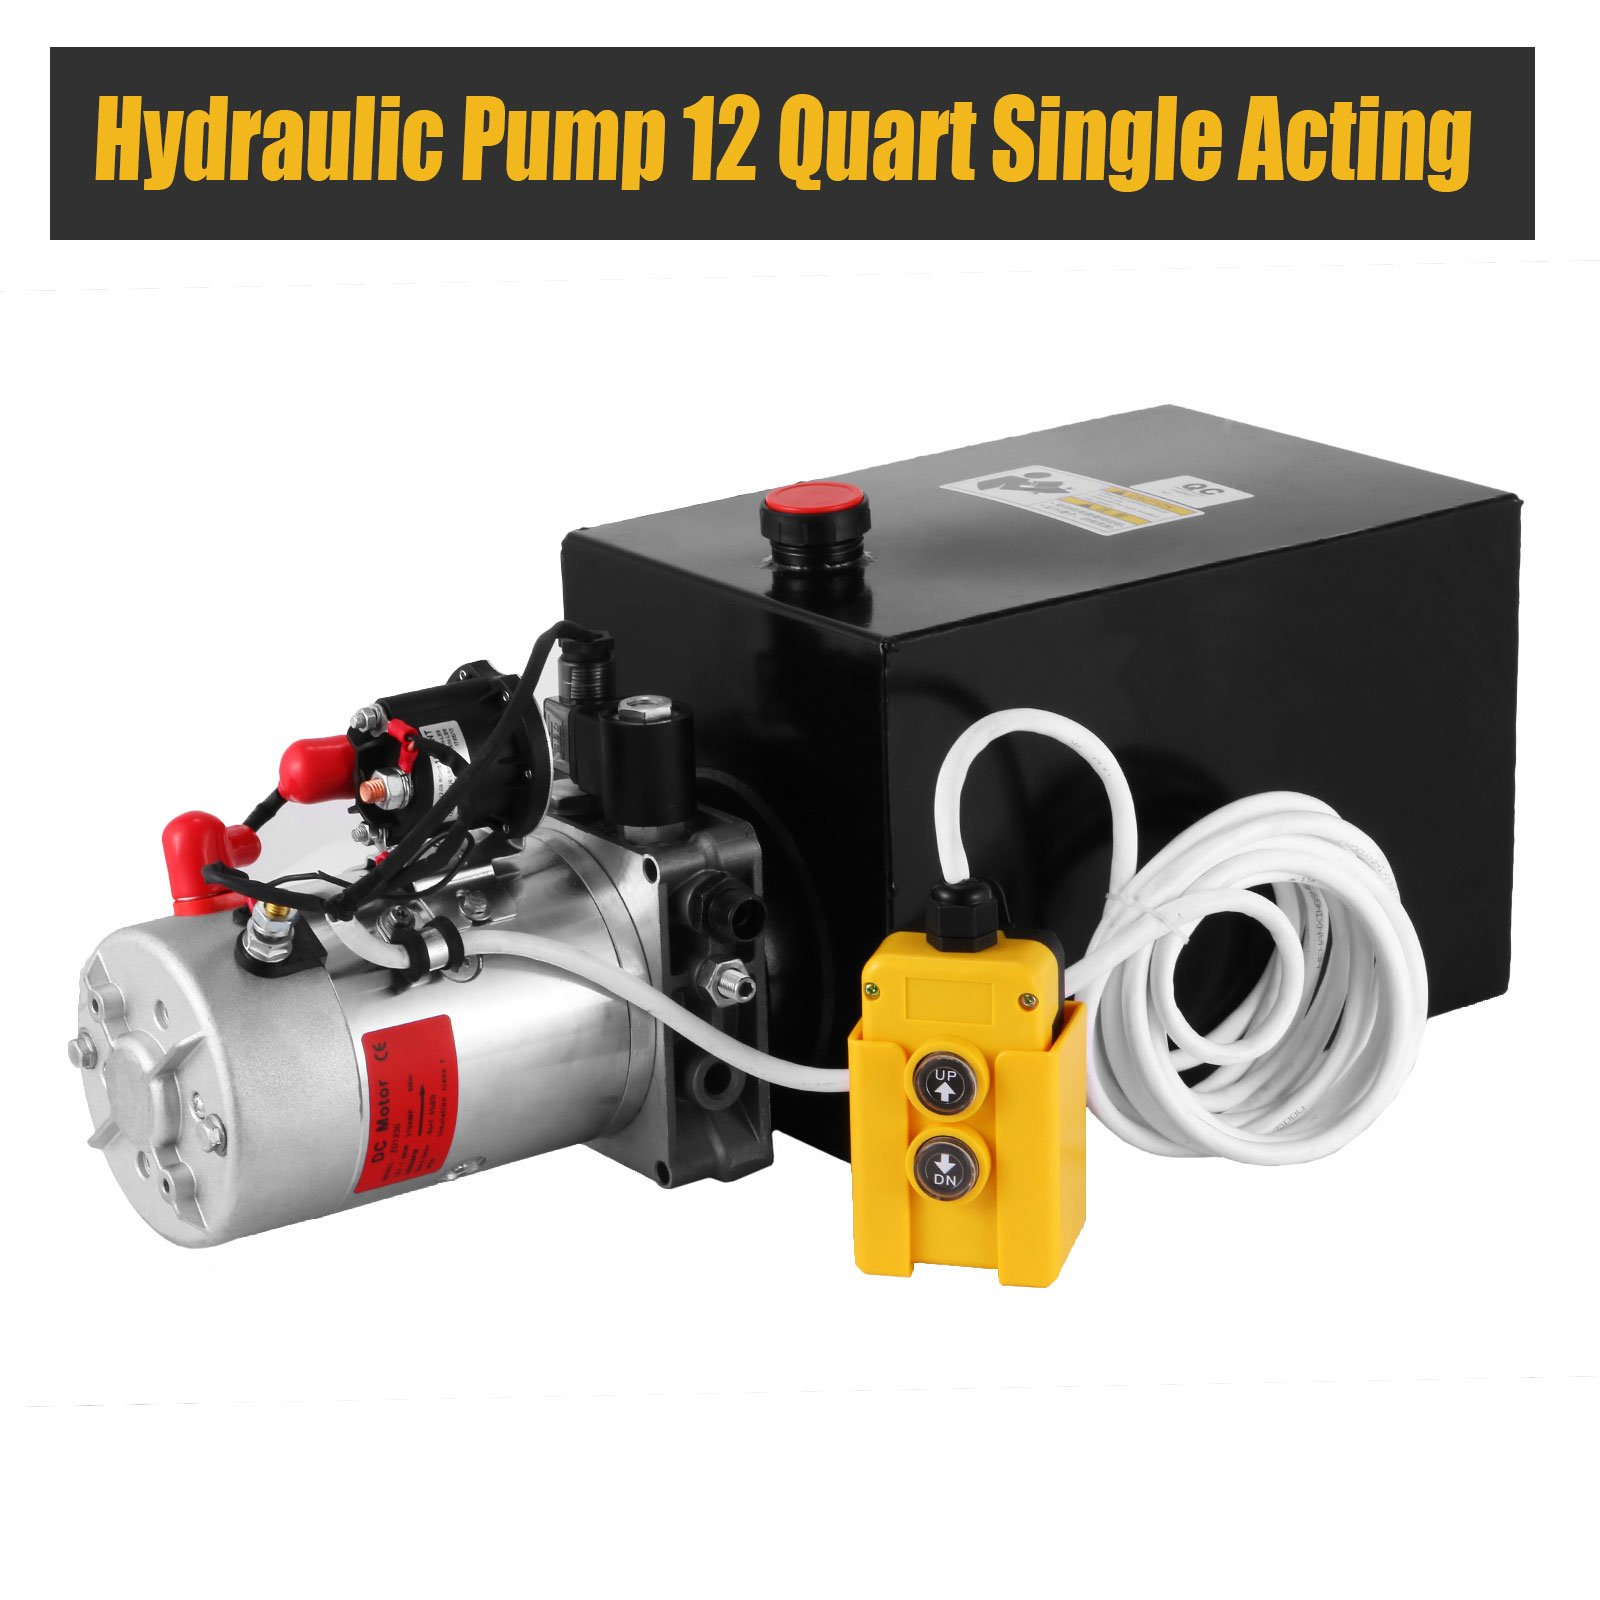 Happybuy Hydraulic Pump 12 Quart Single Acting Hydraulic Power Unit 12V DC Metal Tank Hydraulic Pump Unit for Dump Trailers Remotely Controlled